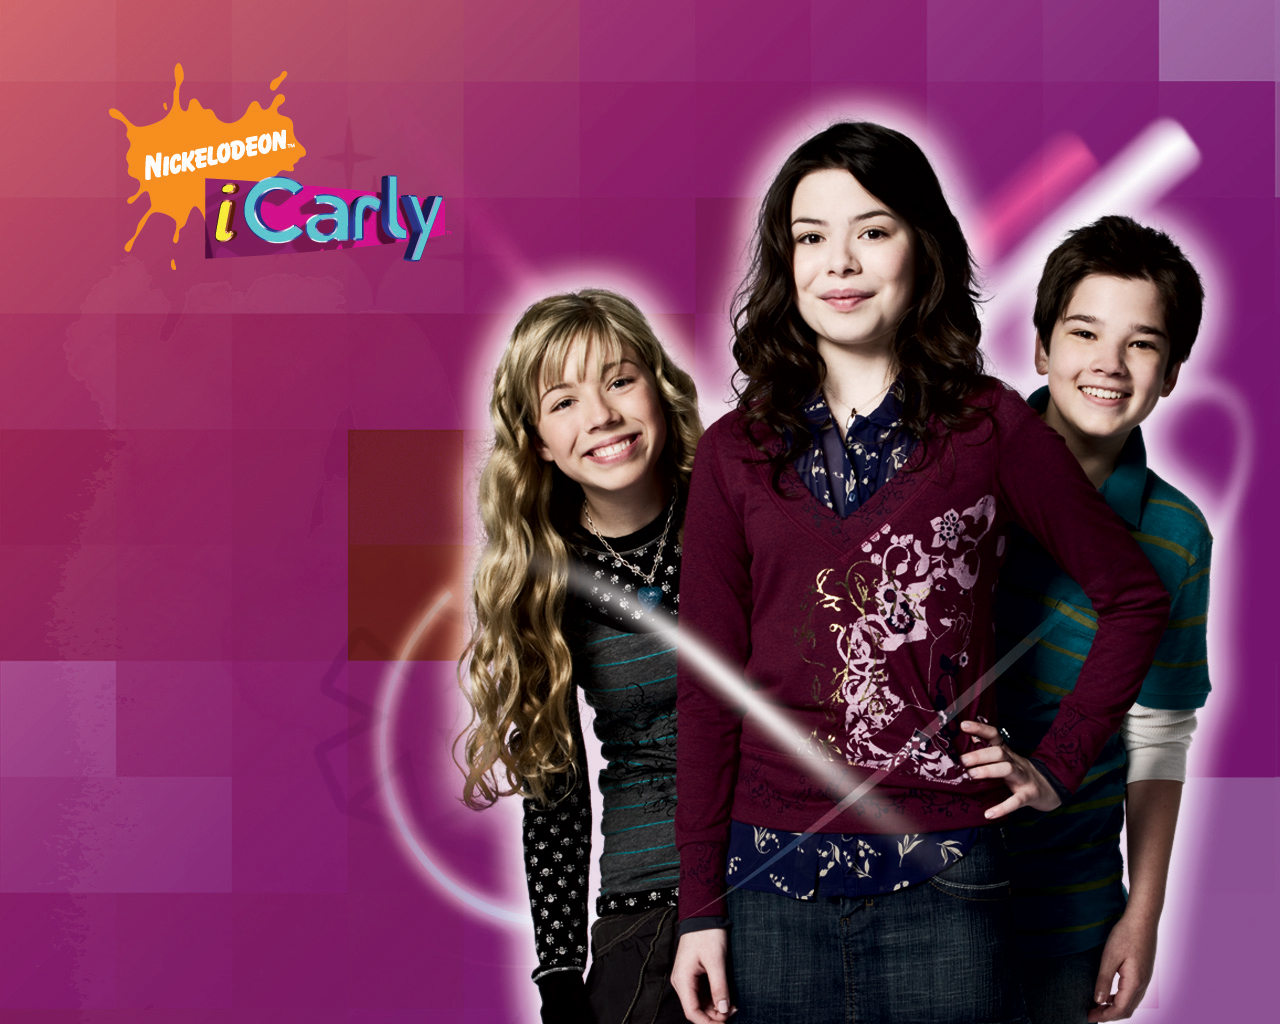 luck charile wizardes warvley icarly